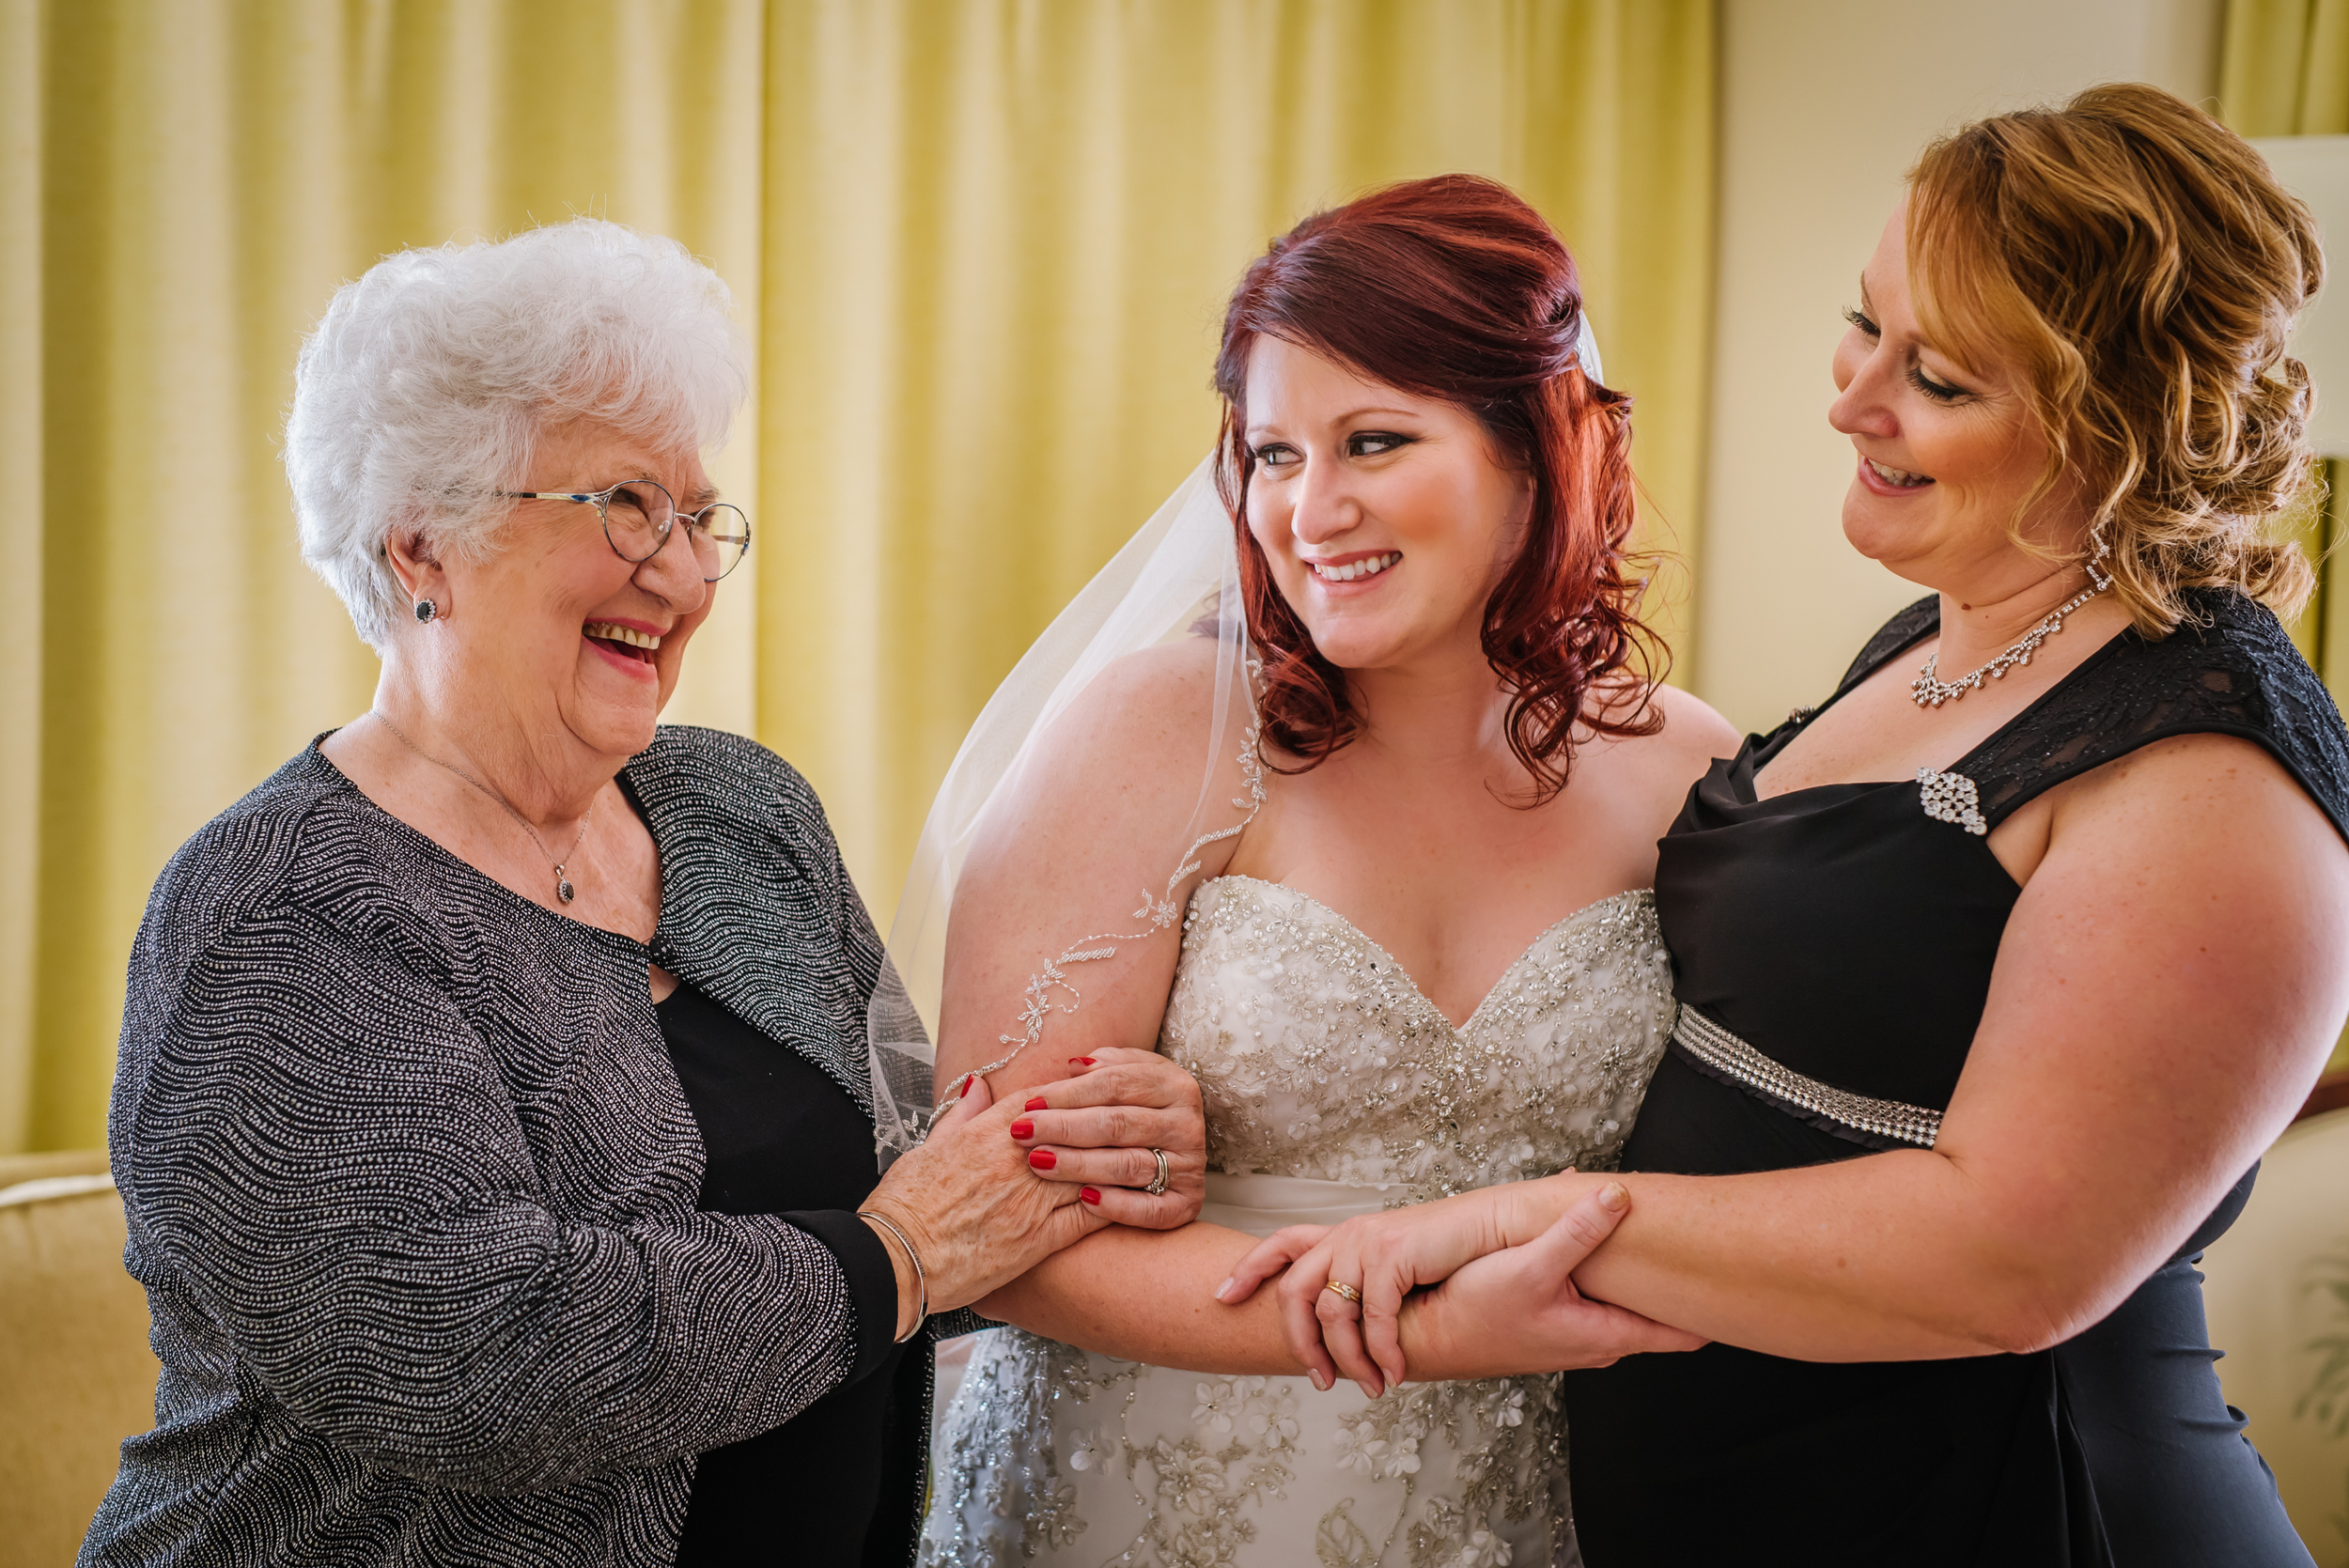 Christina and Nick share their Halloween wedding date with her lovely grandparents. This images of 3 generations of beautiful women makes me tear up!